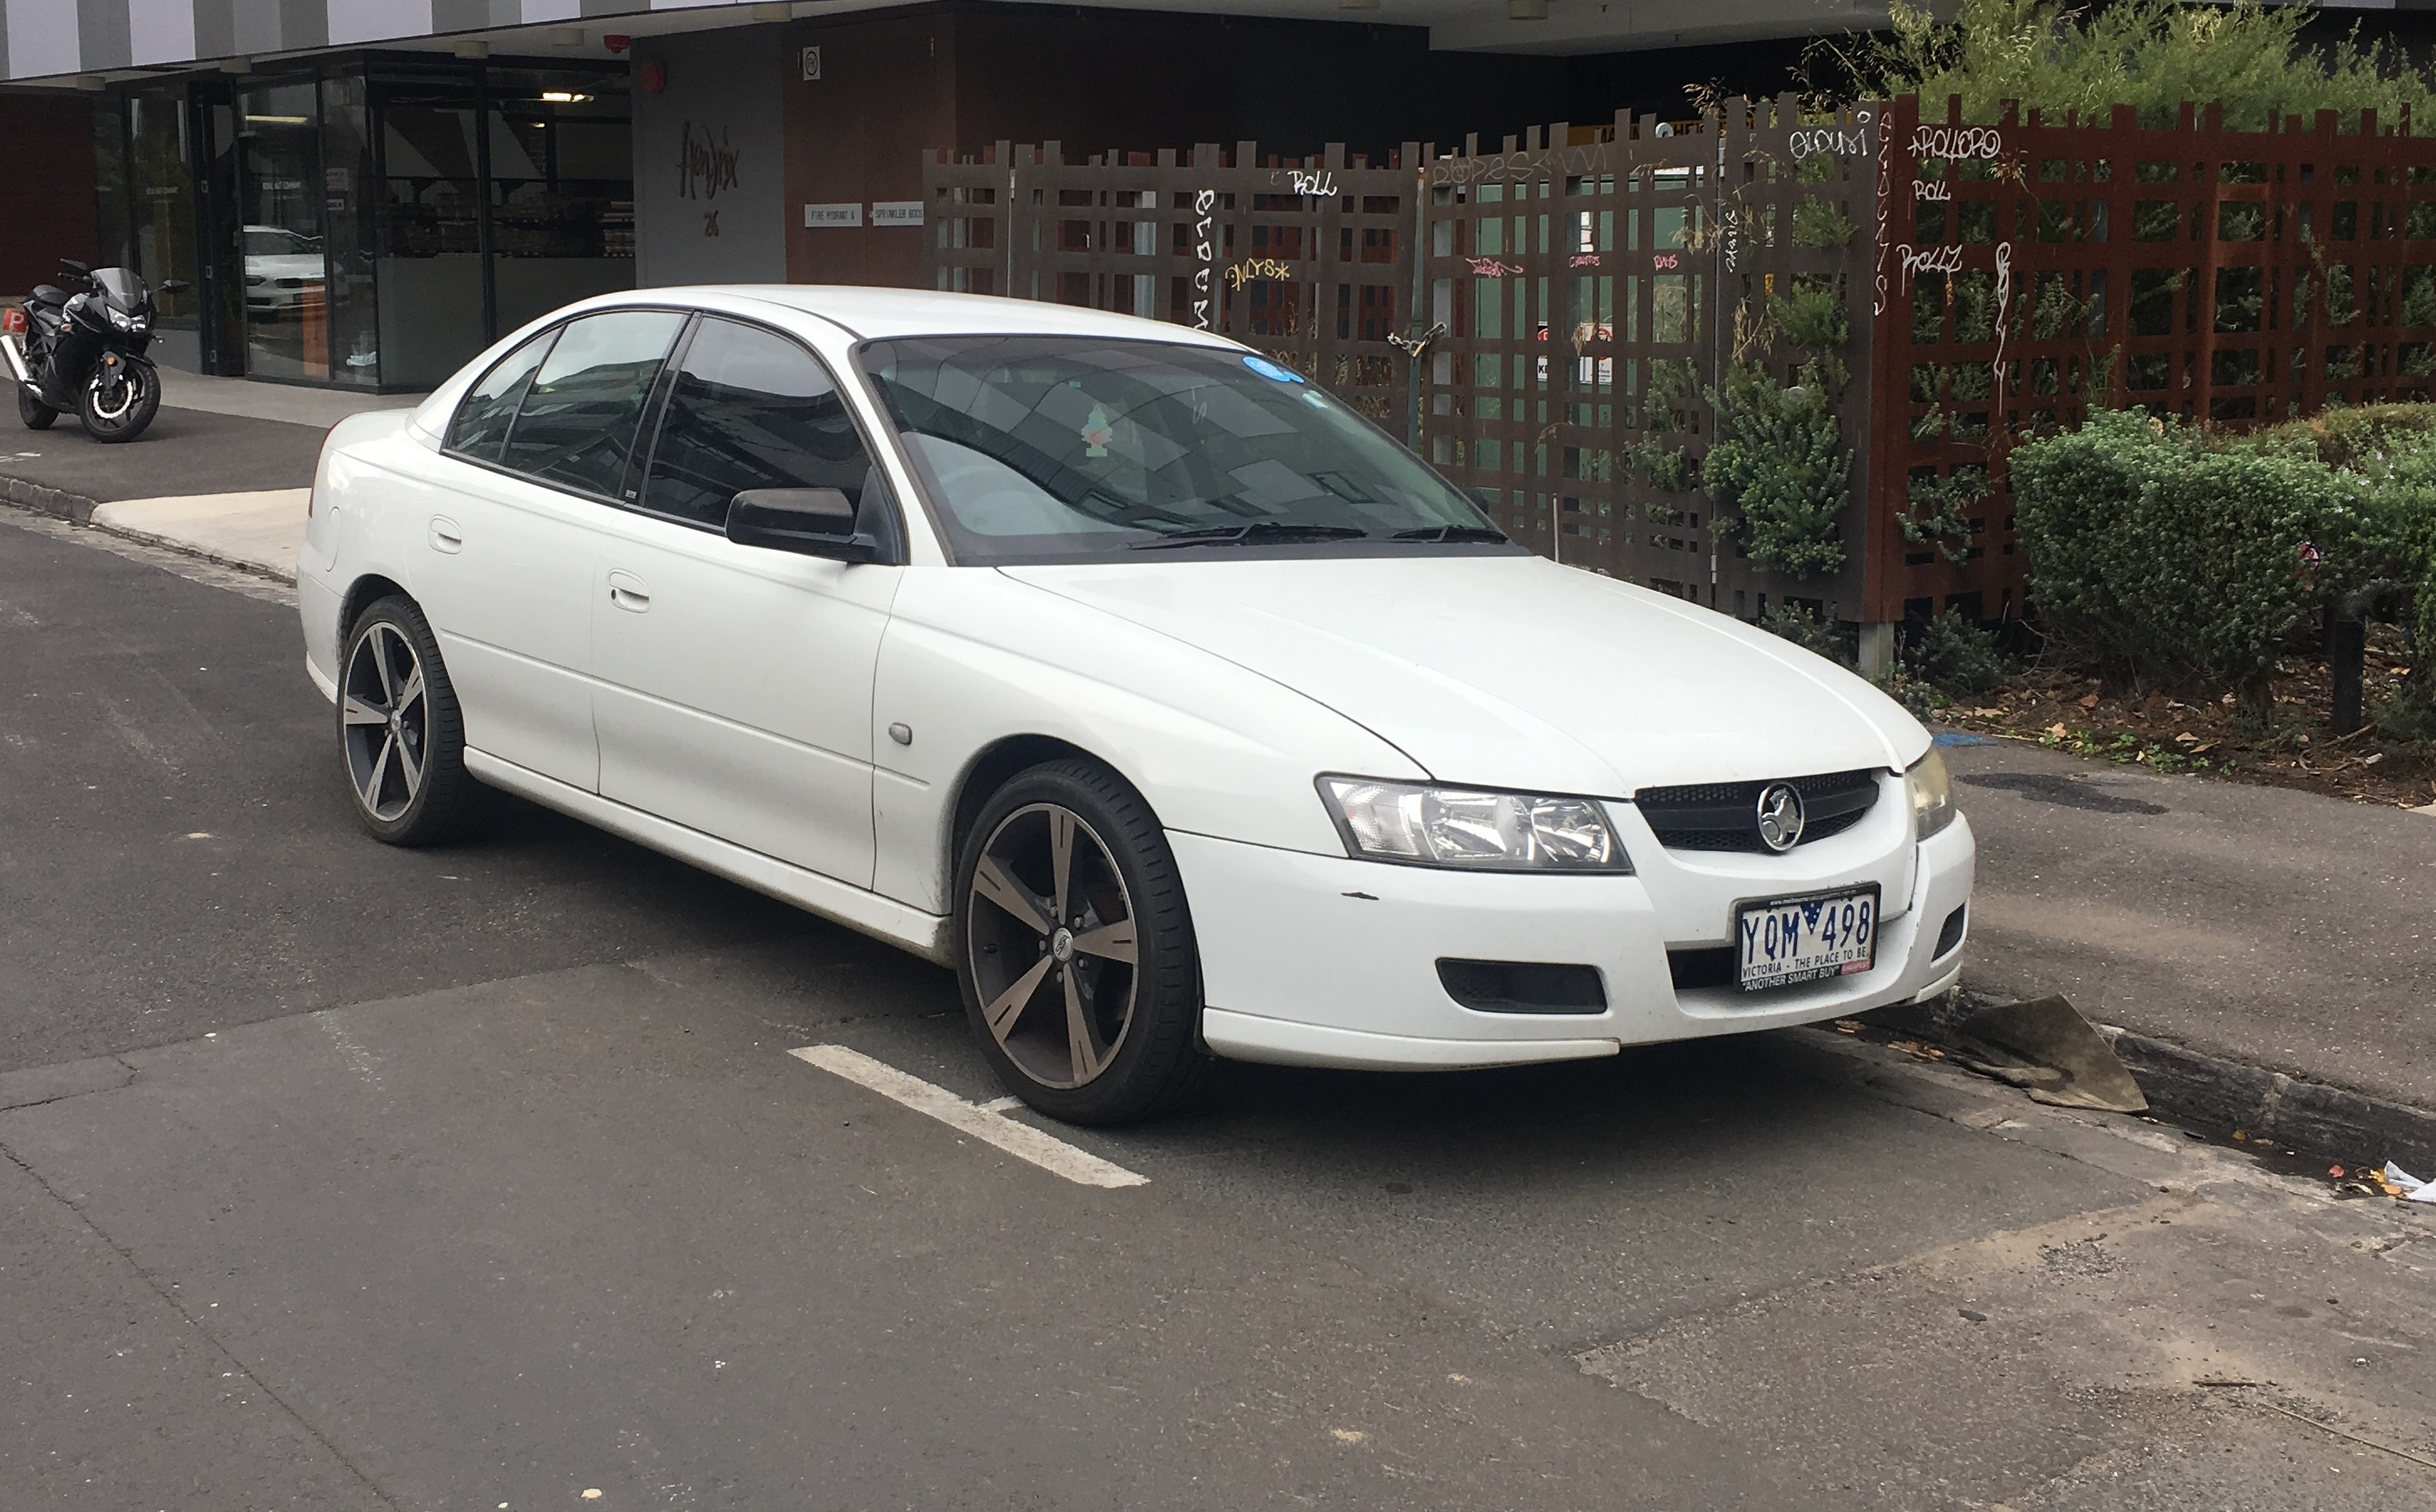 Picture of Rohit's 2005 Holden Commodore